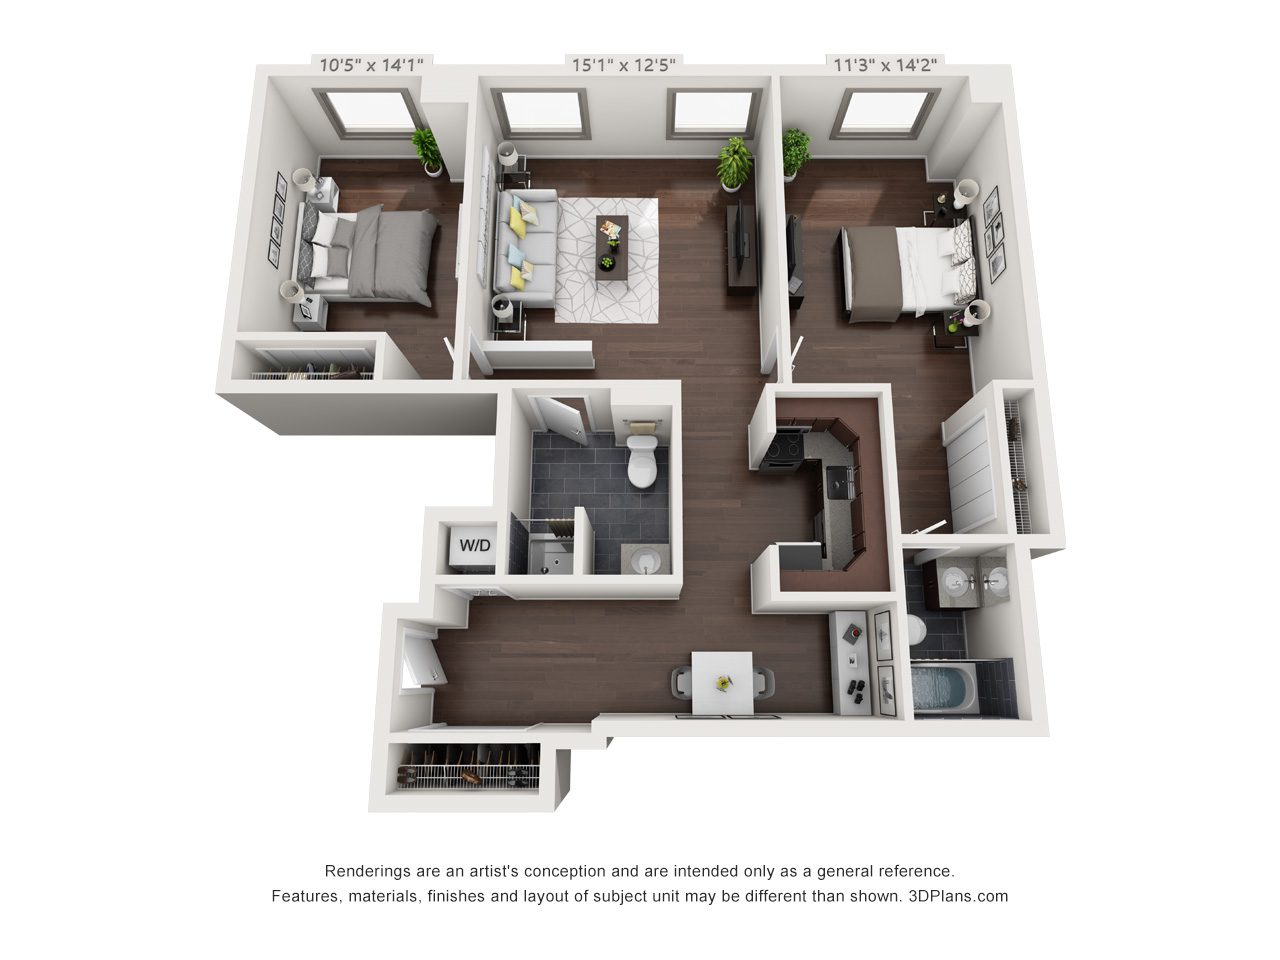 Philadelphia community college apartments - 2 bedroom